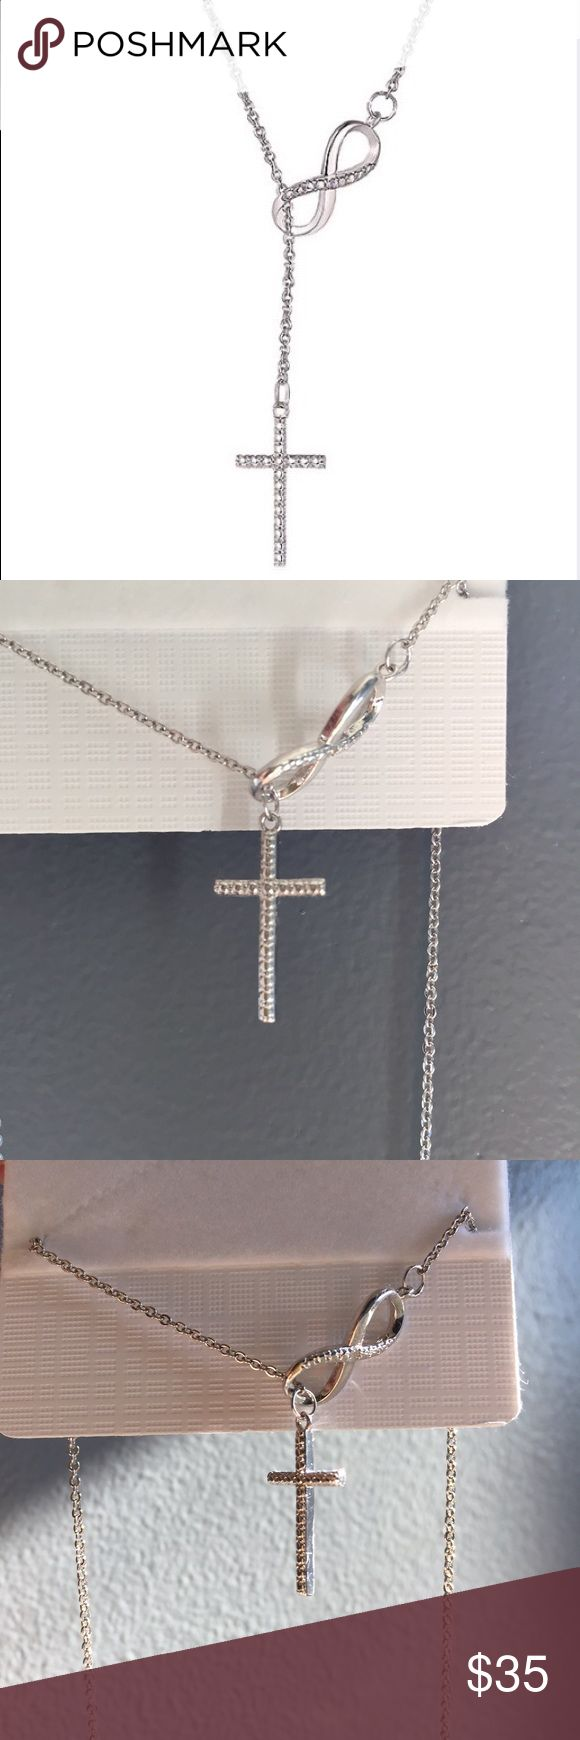 NWT White Gold Infinity & Cross Very elegant infinity & Cross necklace. NWT packaged in dust bag & box. Great Christmas gift! Jewelry Necklaces